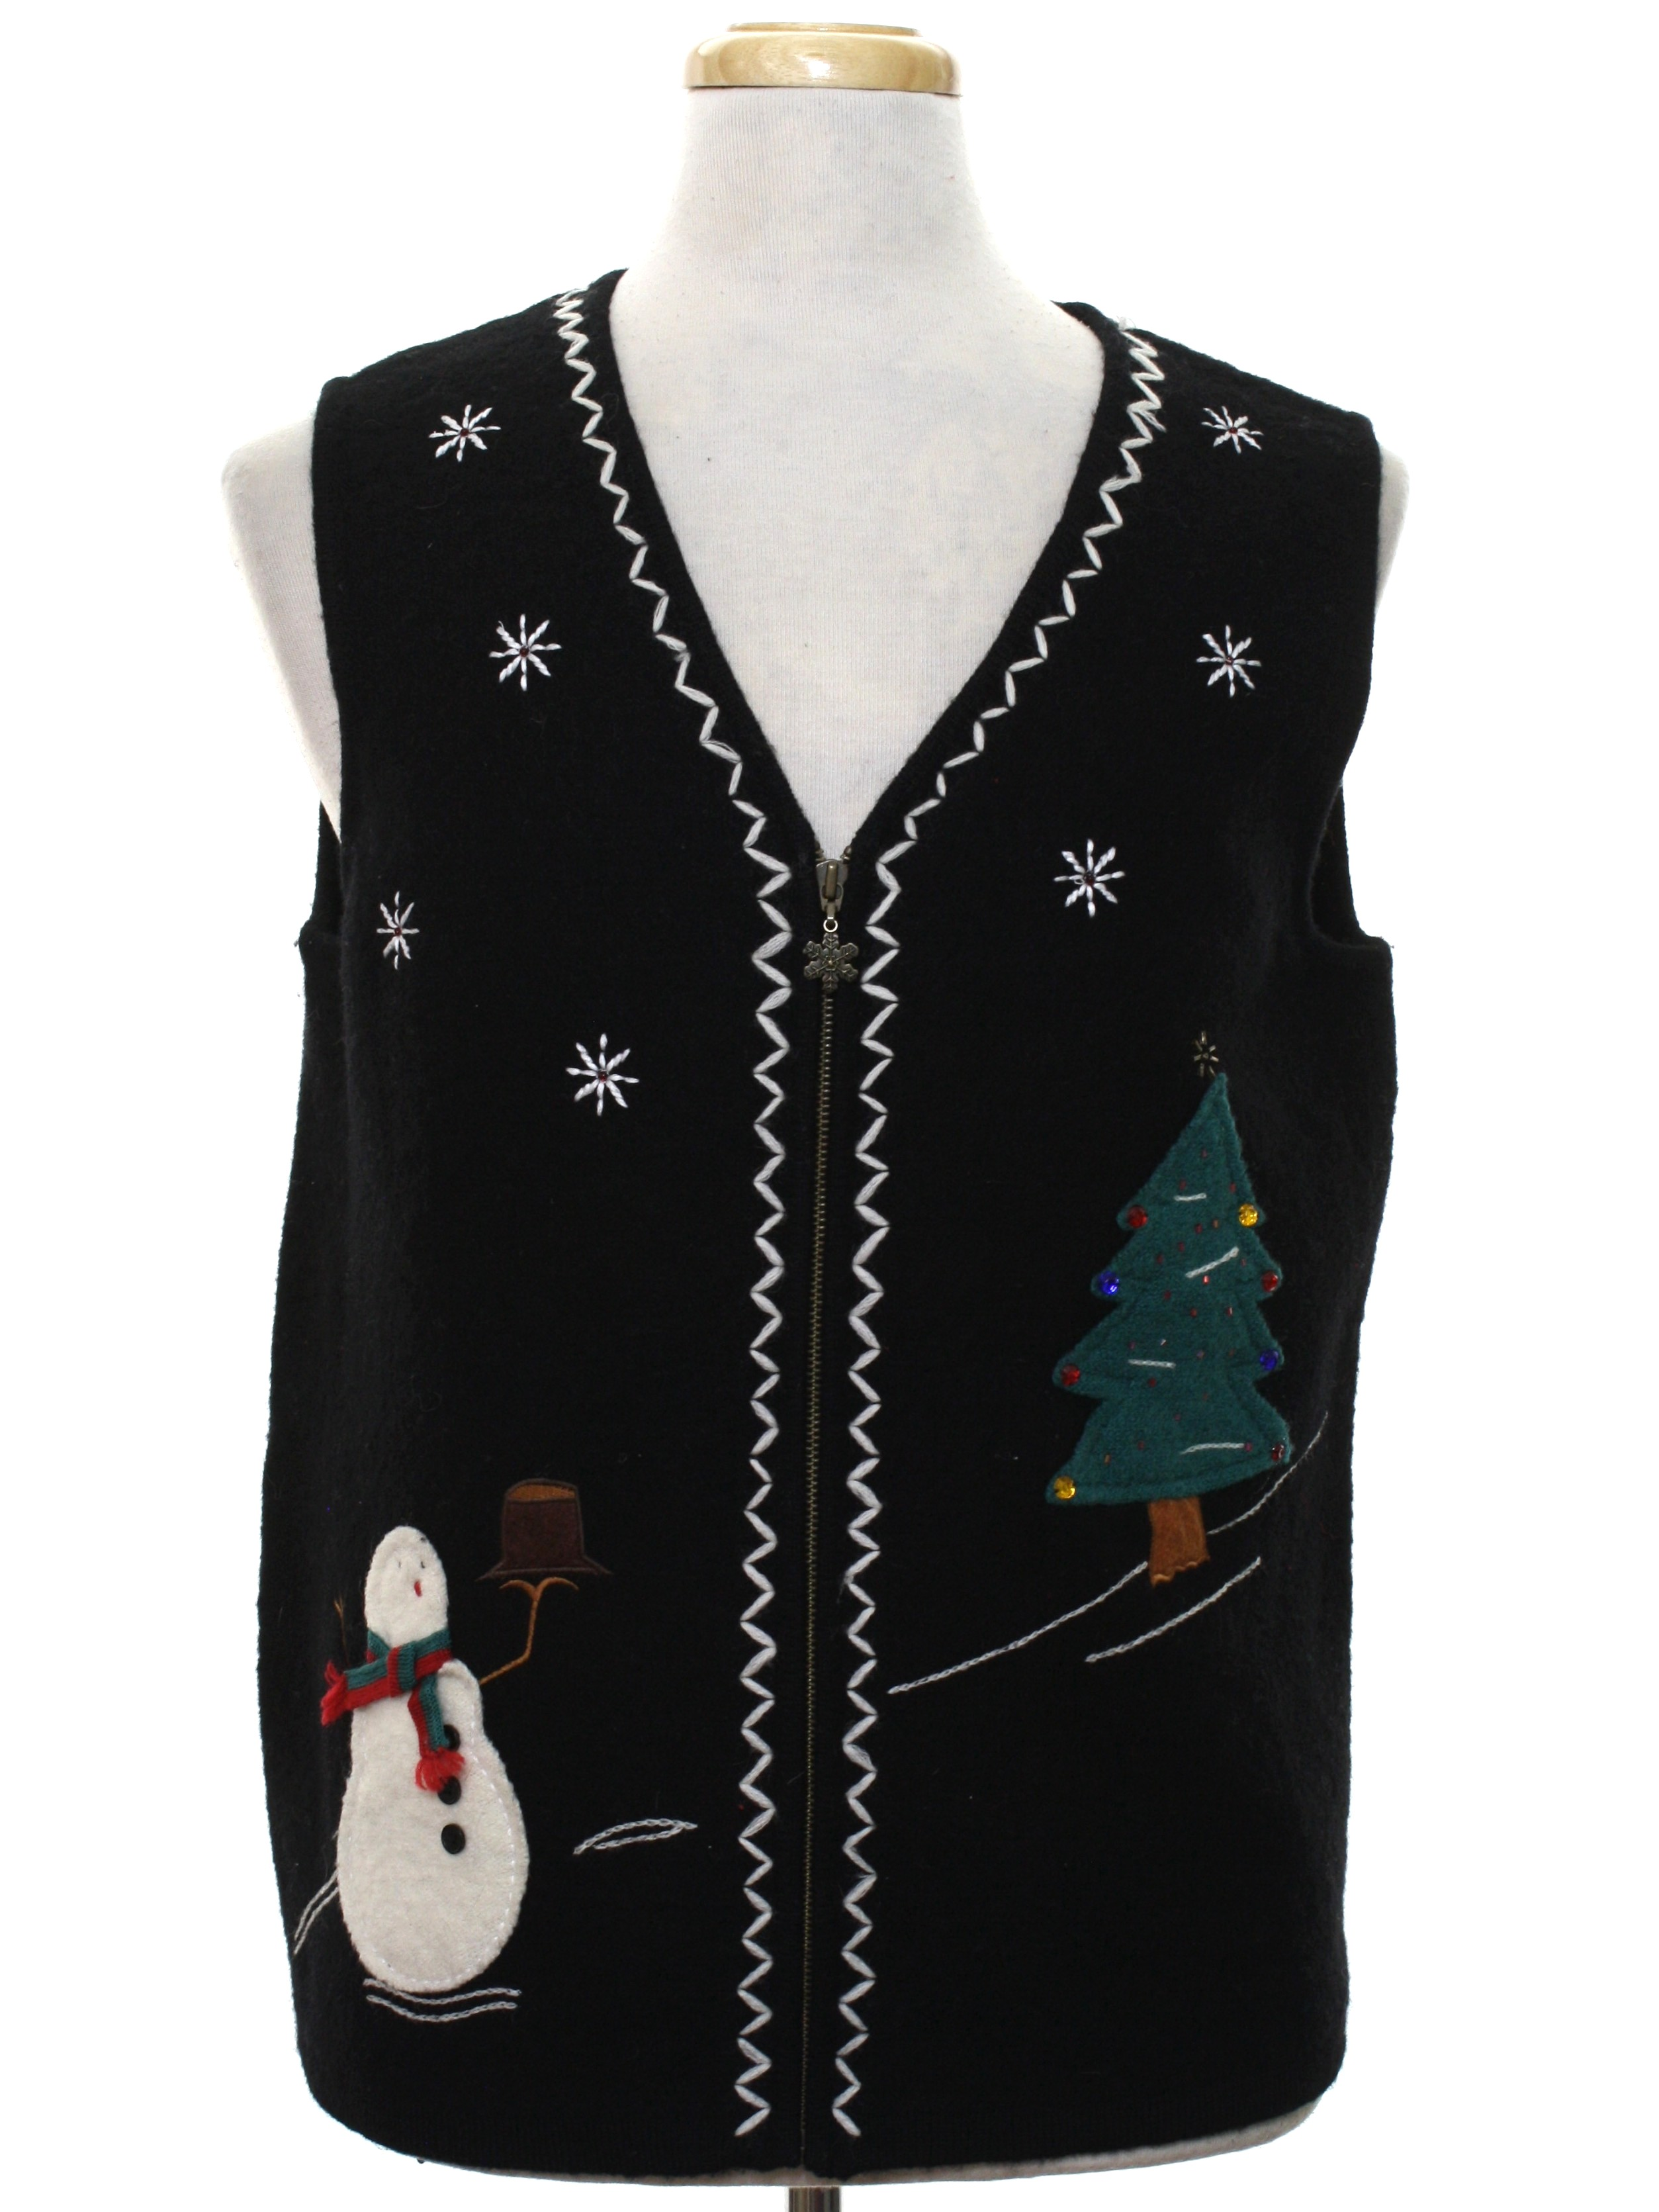 Ugly Christmas Sweater Vest: -Bob Timberlake- Unisex black ...